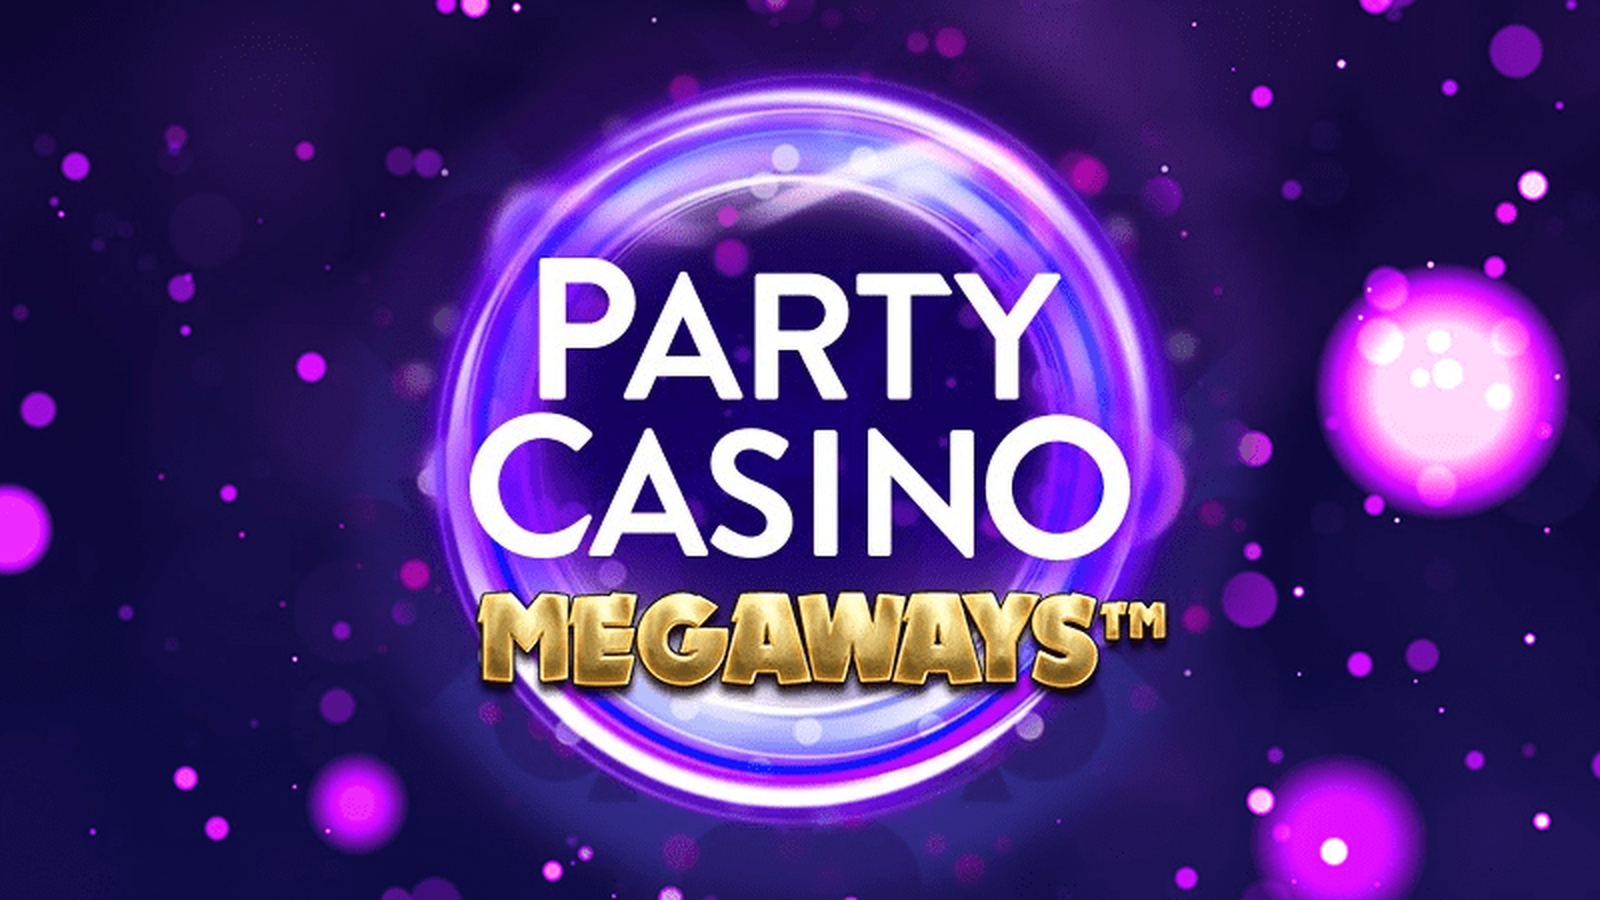 The Party Casino Megaways Online Slot Demo Game by Blueprint Gaming